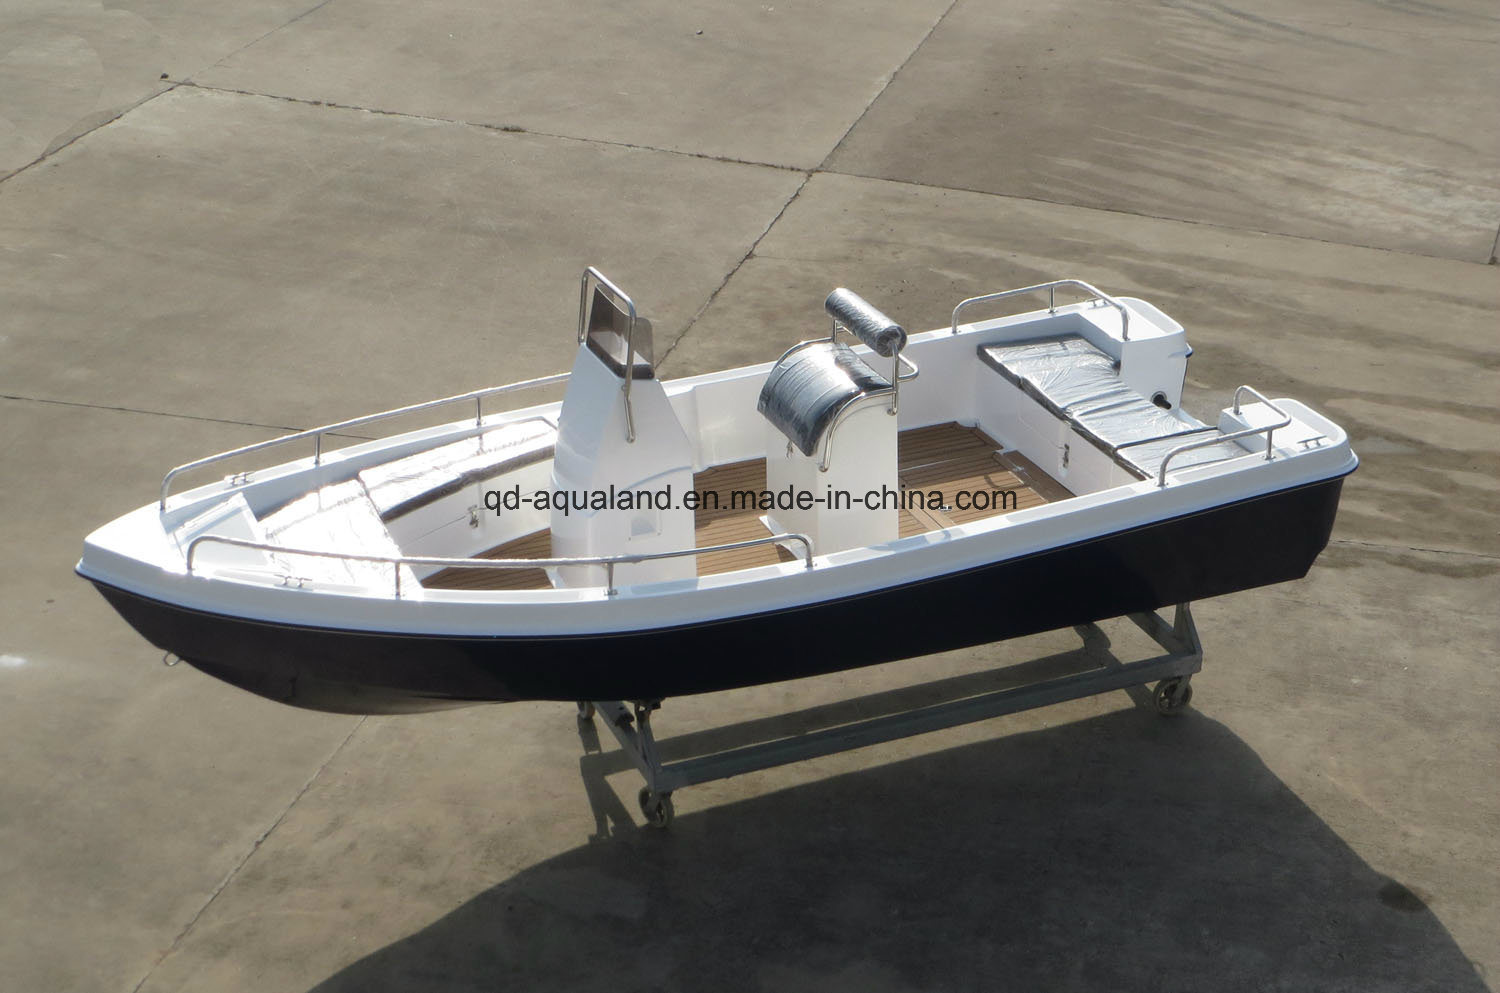 China Aqualand 18feet 5.5m Fiberglass Motor Boat/Sports Fishing Boat/Center Console/Panga Boat (180)